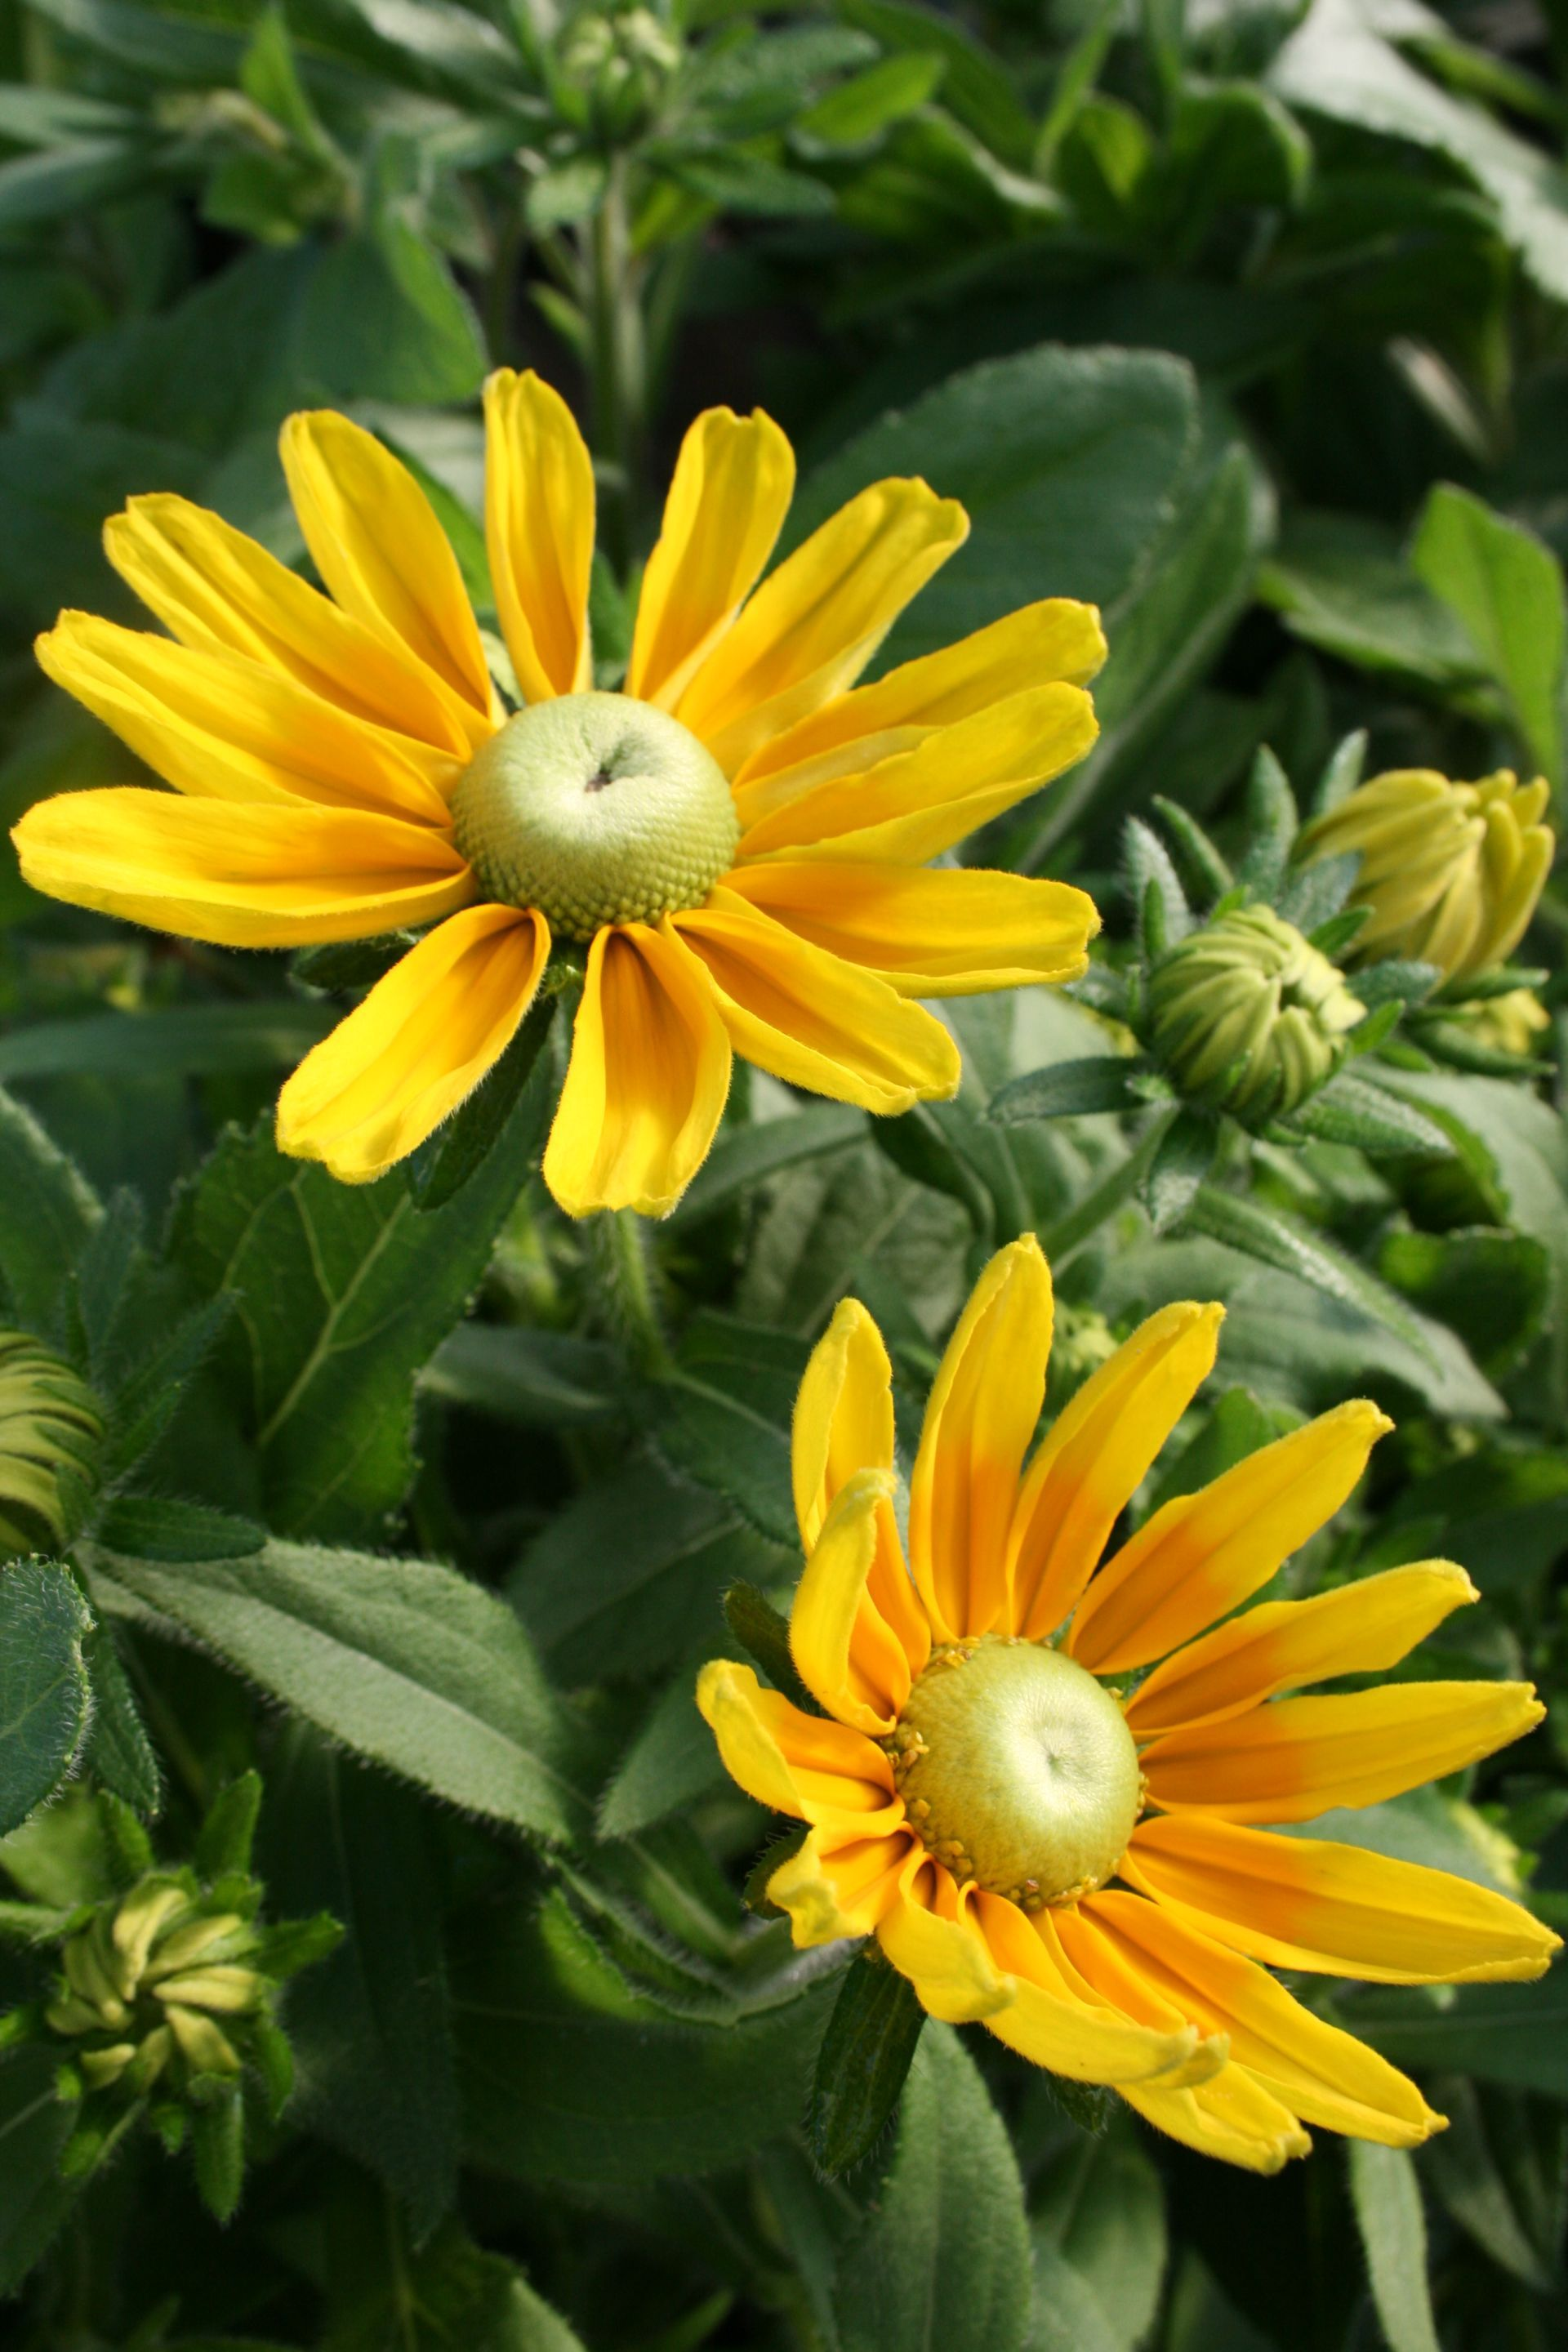 Rudbeckia Is A Sun Loving Perennial Meaning It Comes Back Every